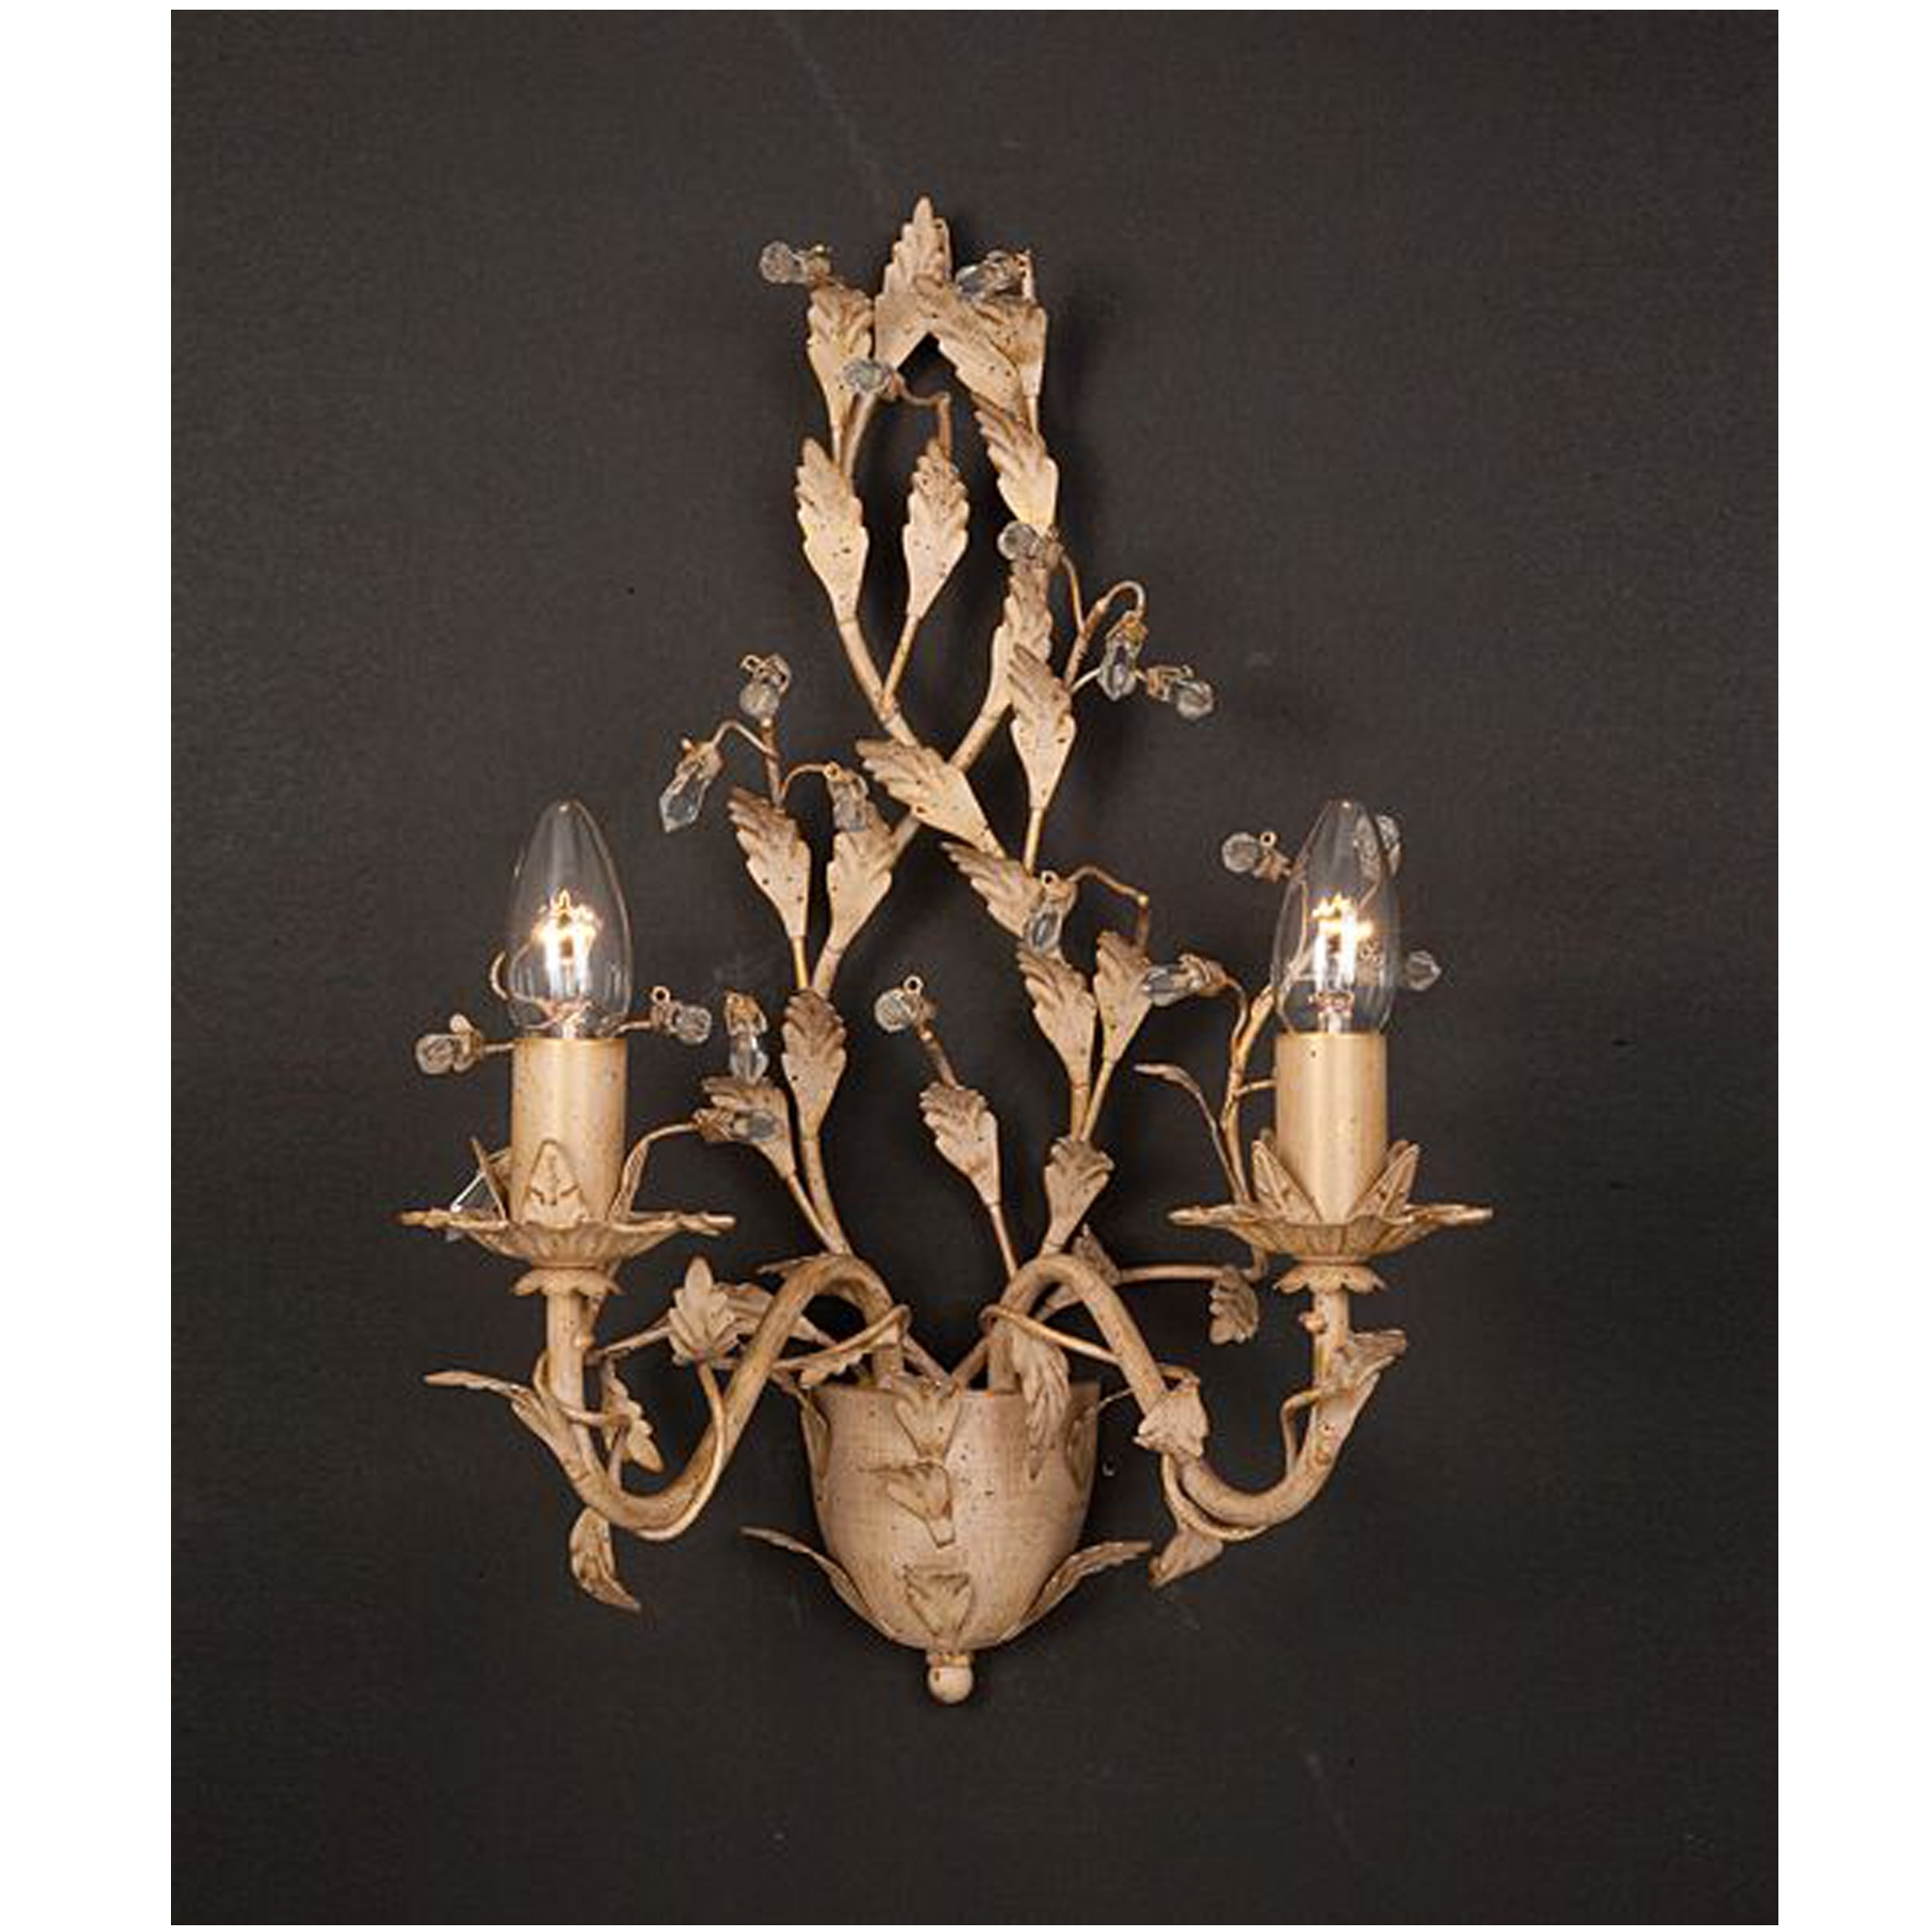 Antique French Style Cream & Gold Wall Light - French Lighting from Homesdirect 365 UK